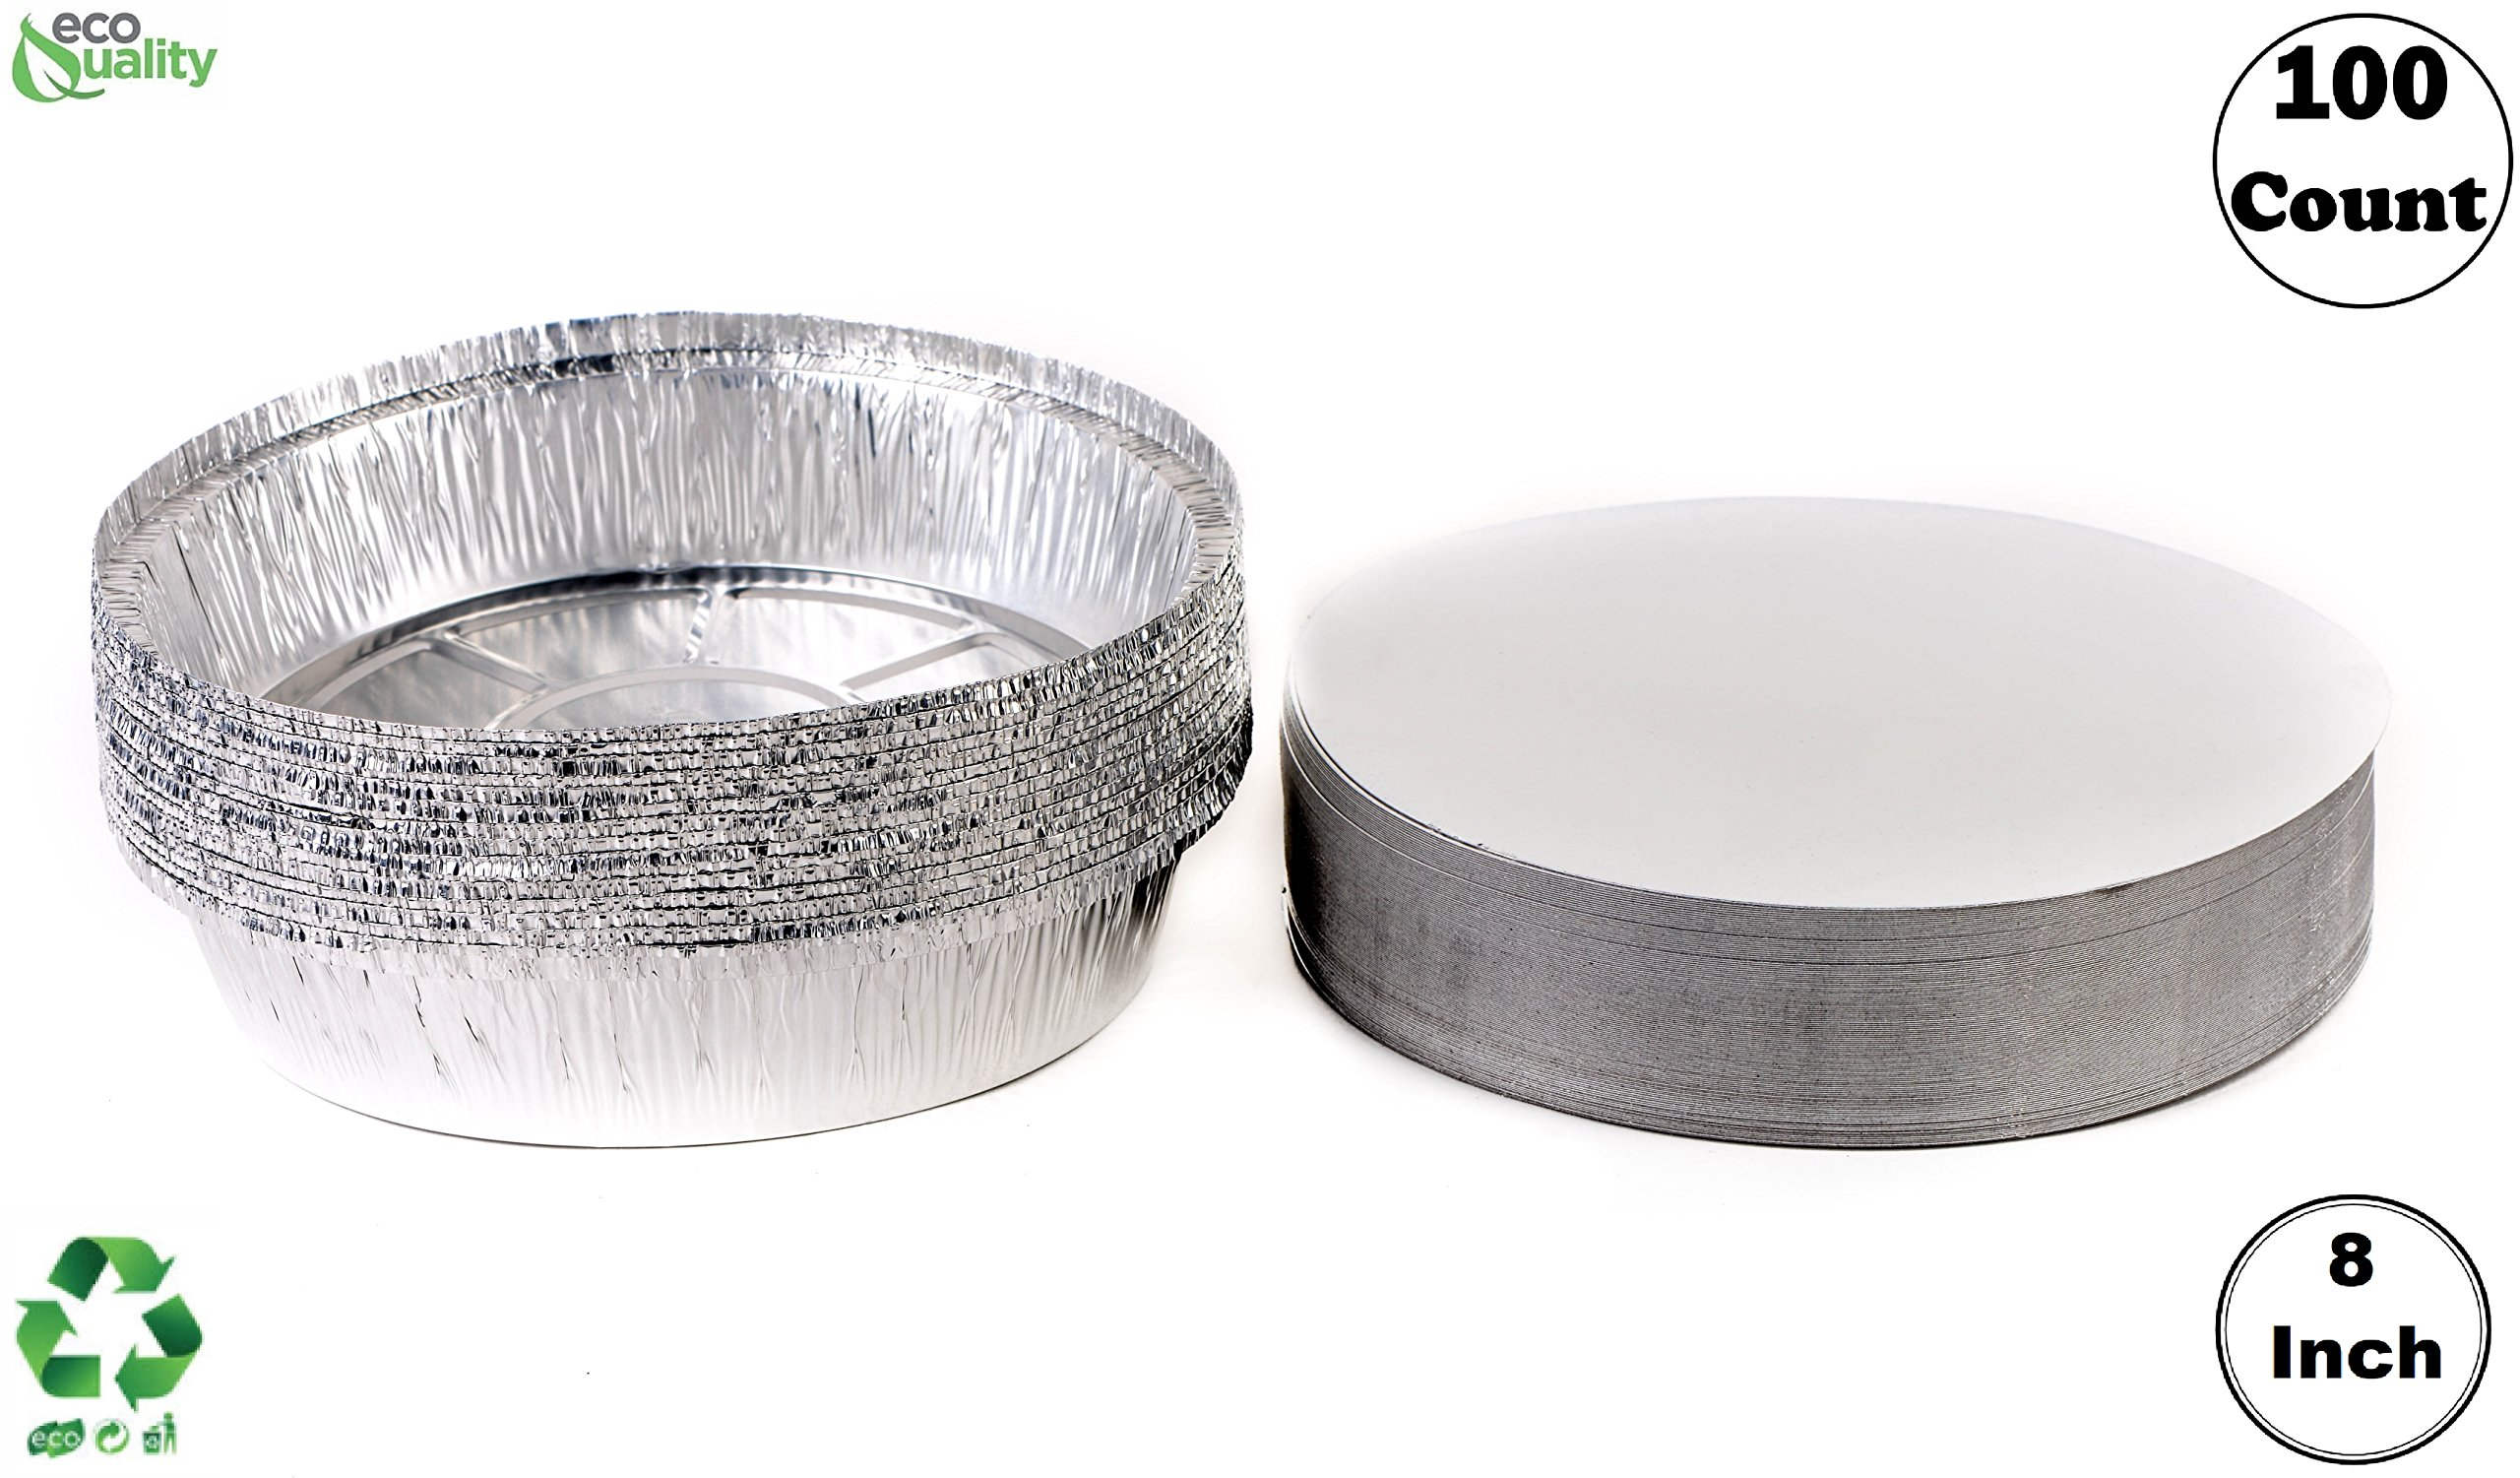 (100 Pack) - 8 Inch Disposable Round Aluminum Foil Take-Out Pans with Board Lids Set - Disposable Tin Containers, Perfect for Baking, Cooking, Catering, Parties, Restaurants by EcoQuality